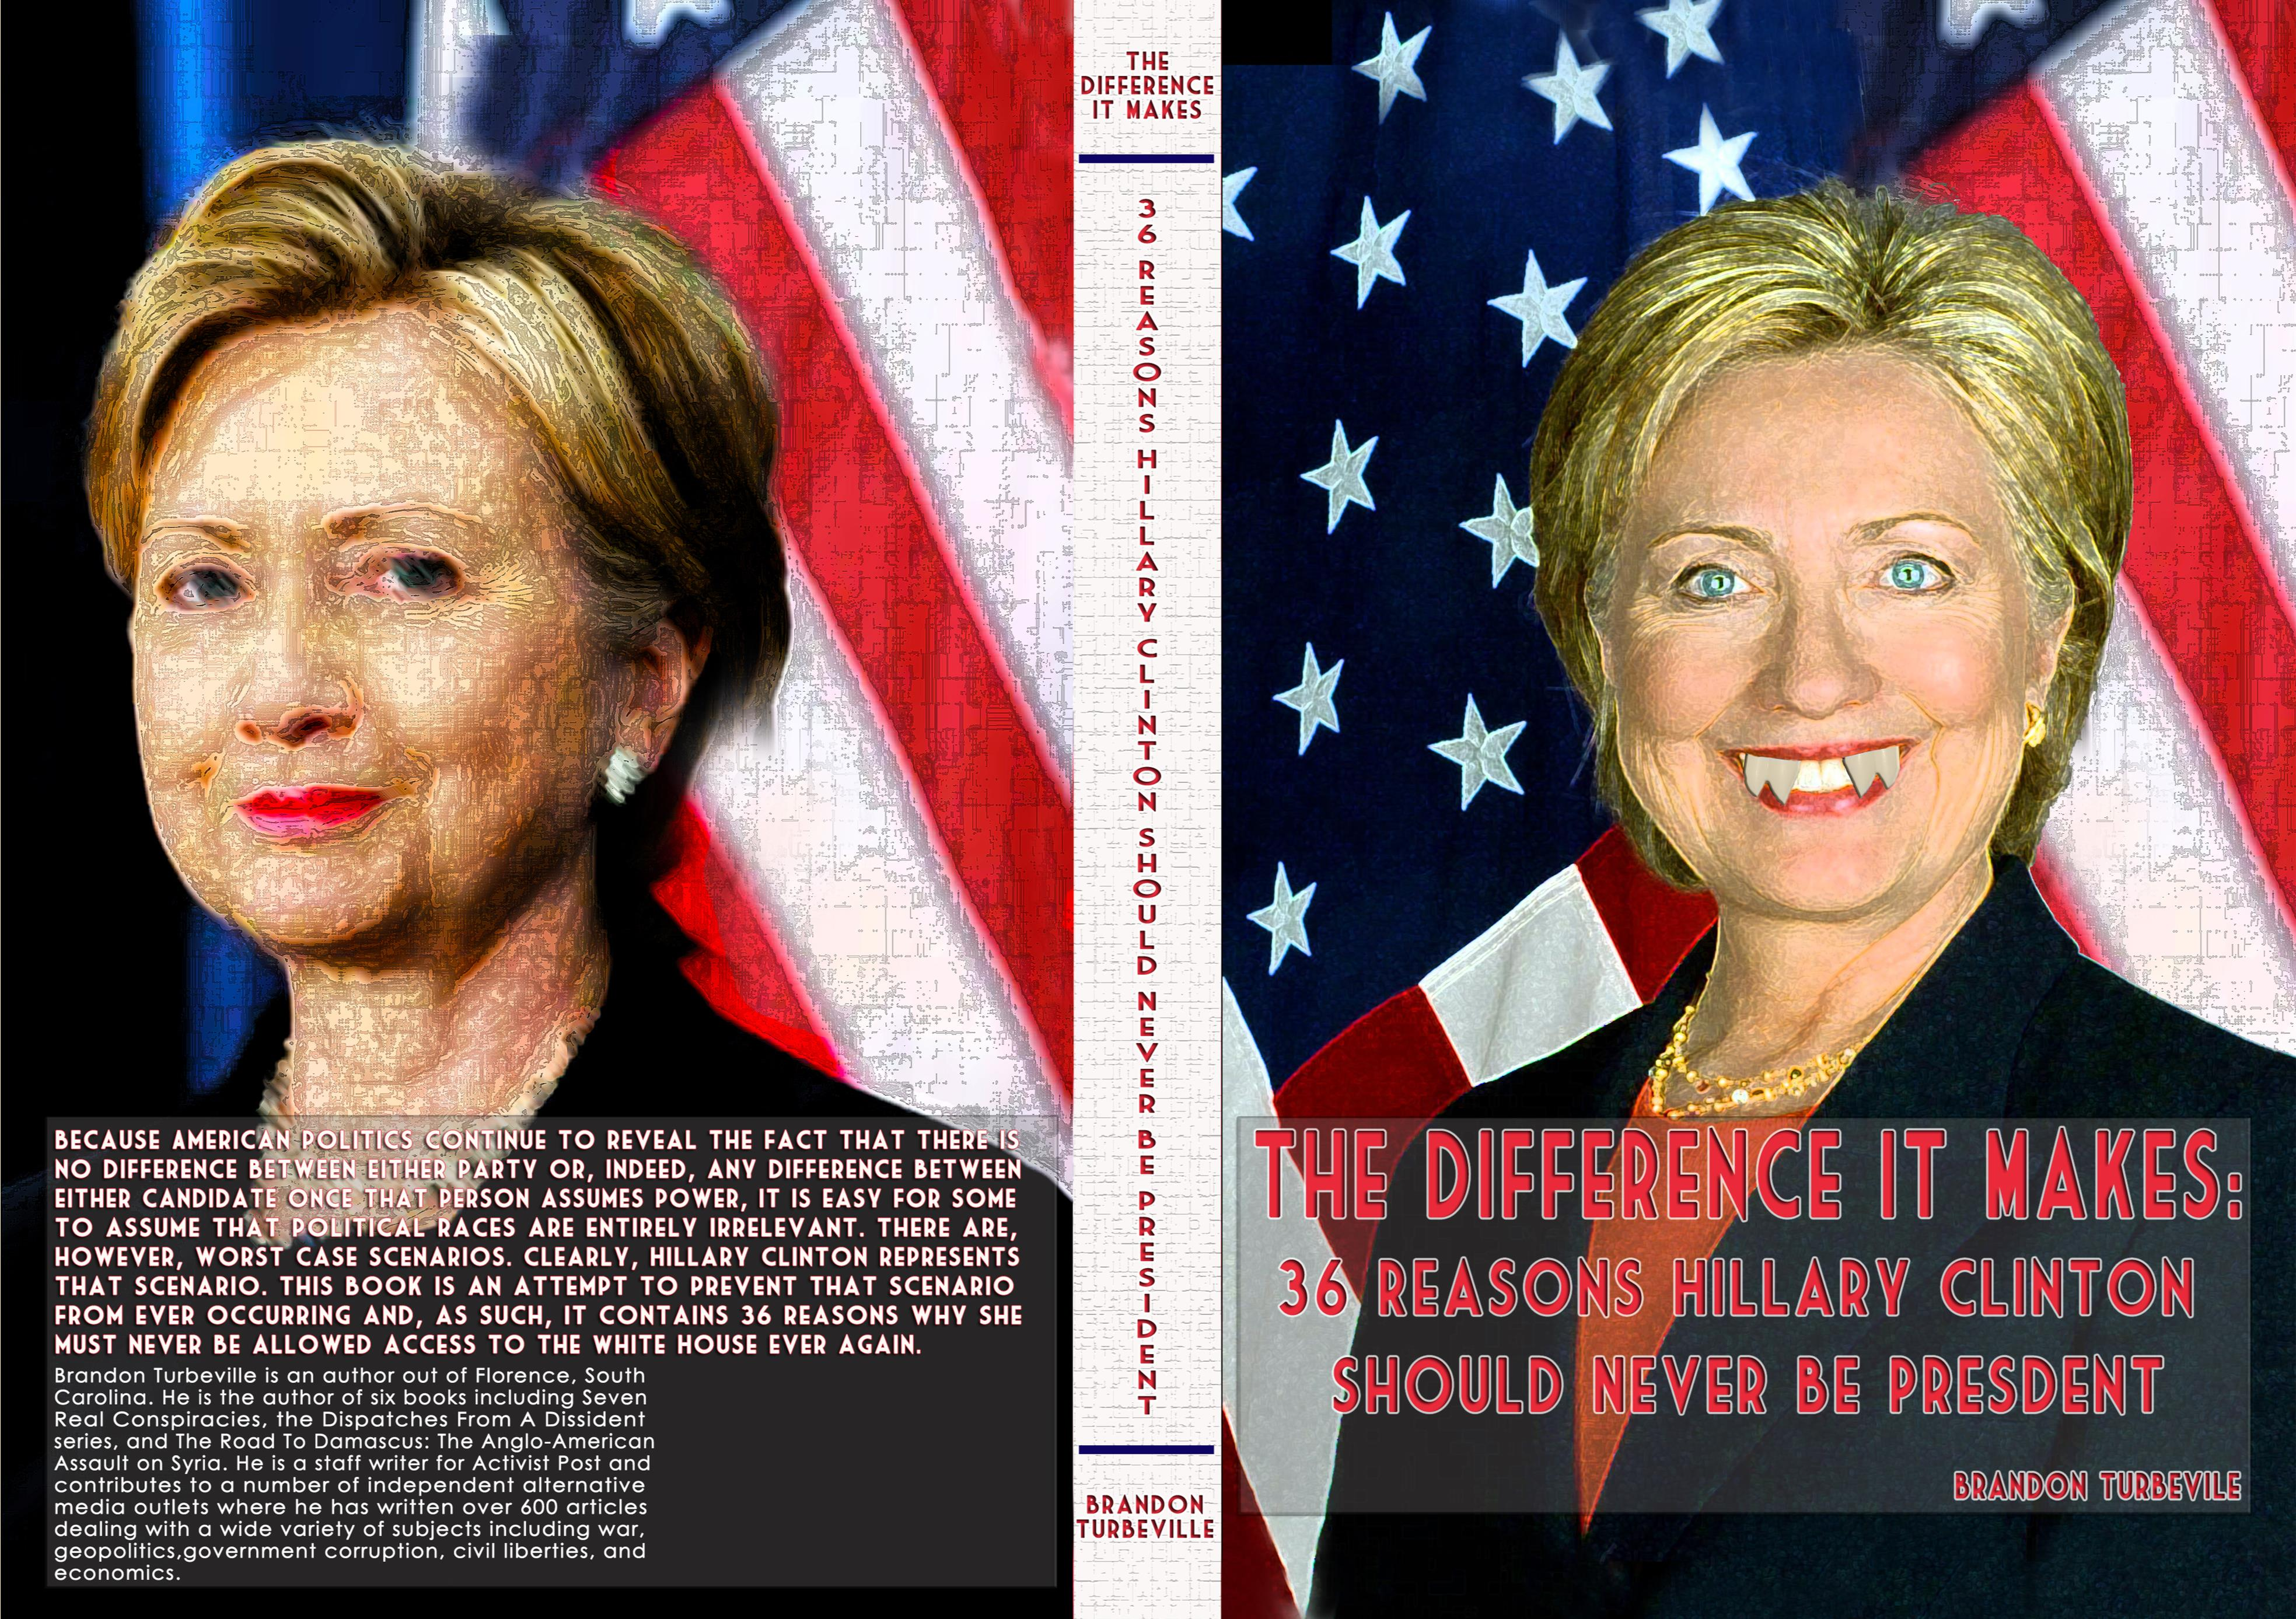 The Difference It Makes: 36 Reasons Hillary Clinton Should Never Be President cover image